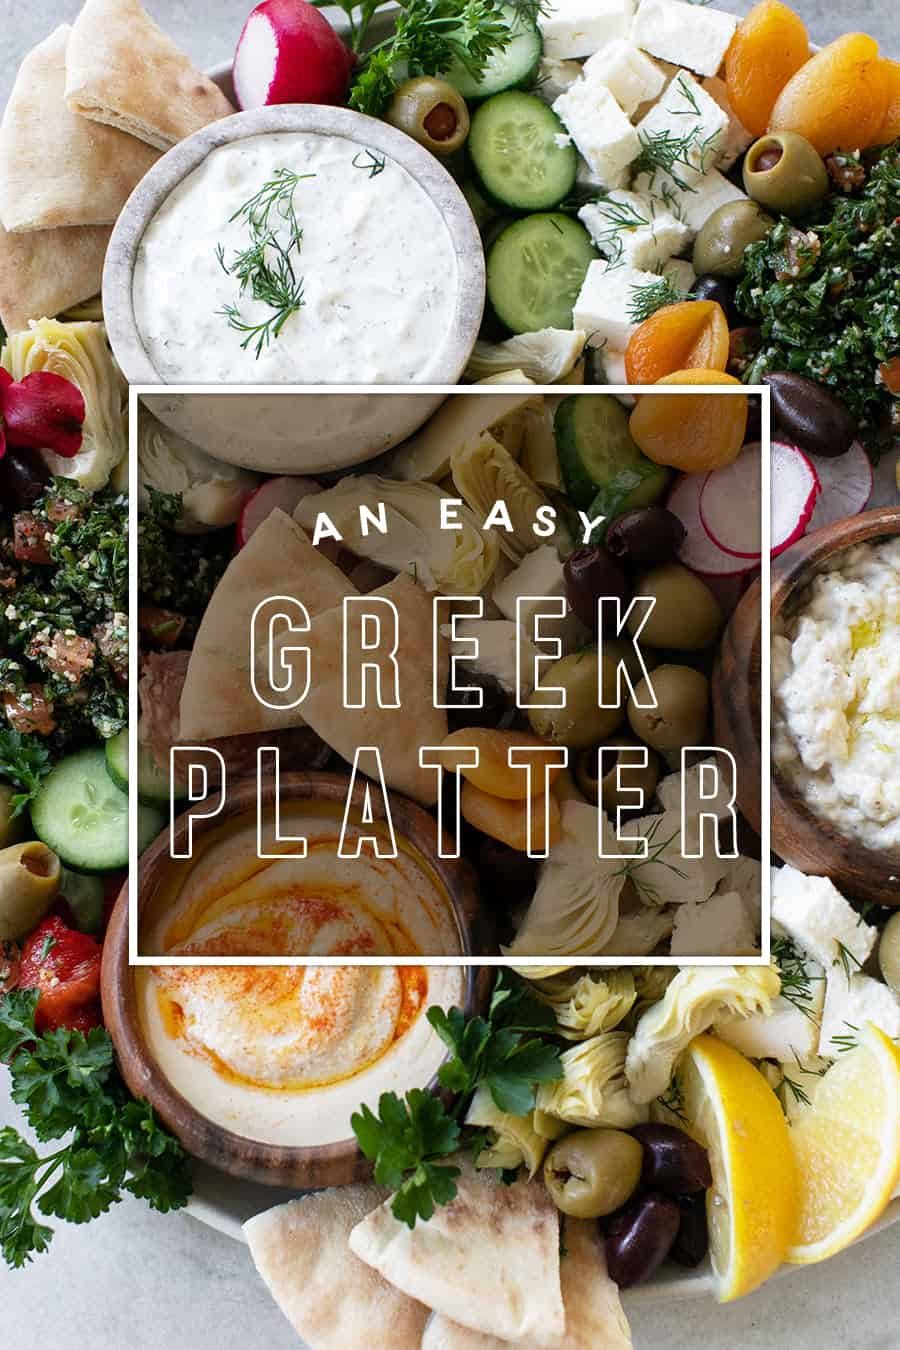 Easy Greek Platter with Graphic.